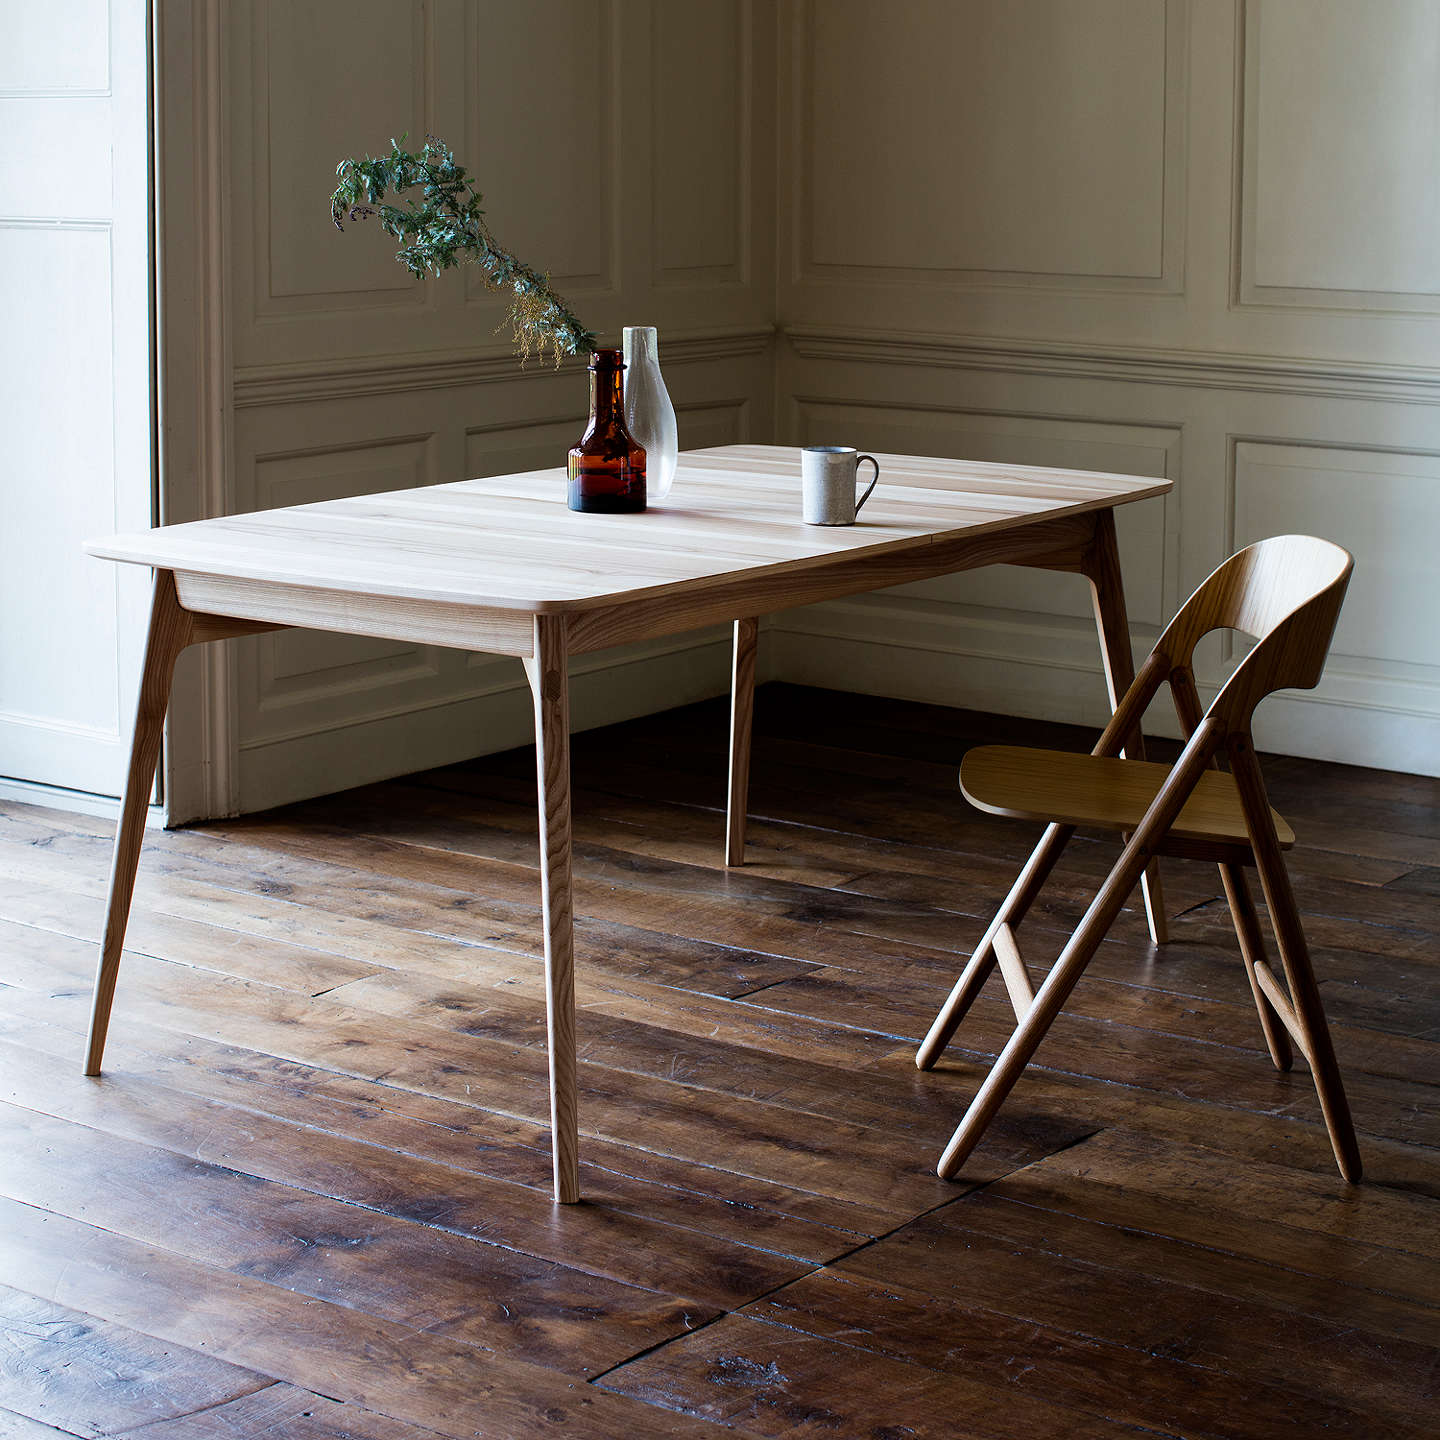 BuyMatthew Hilton for Case Dulwich Extending Dining Table, Oak Online at johnlewis.com